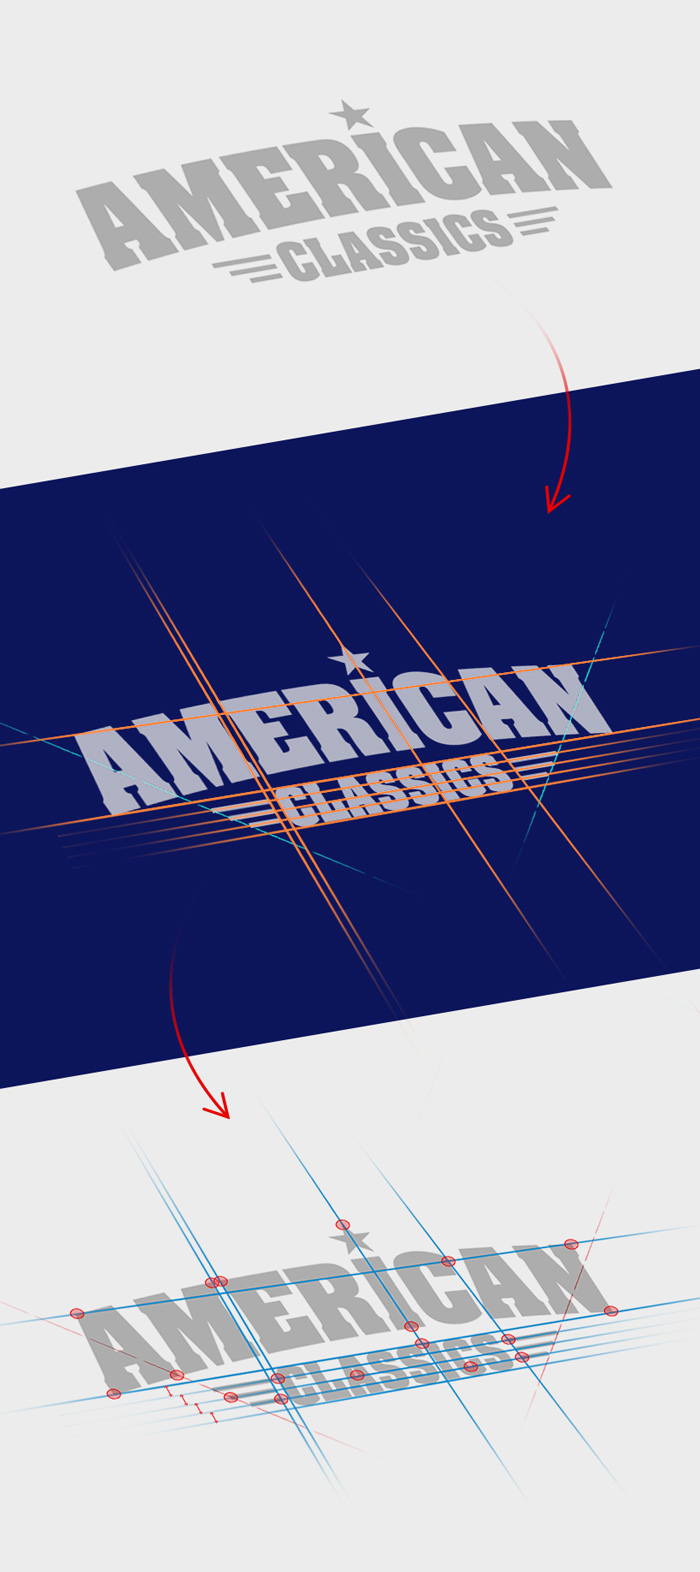 final design guides, logo ontwerp proces | american classics oldenzaal